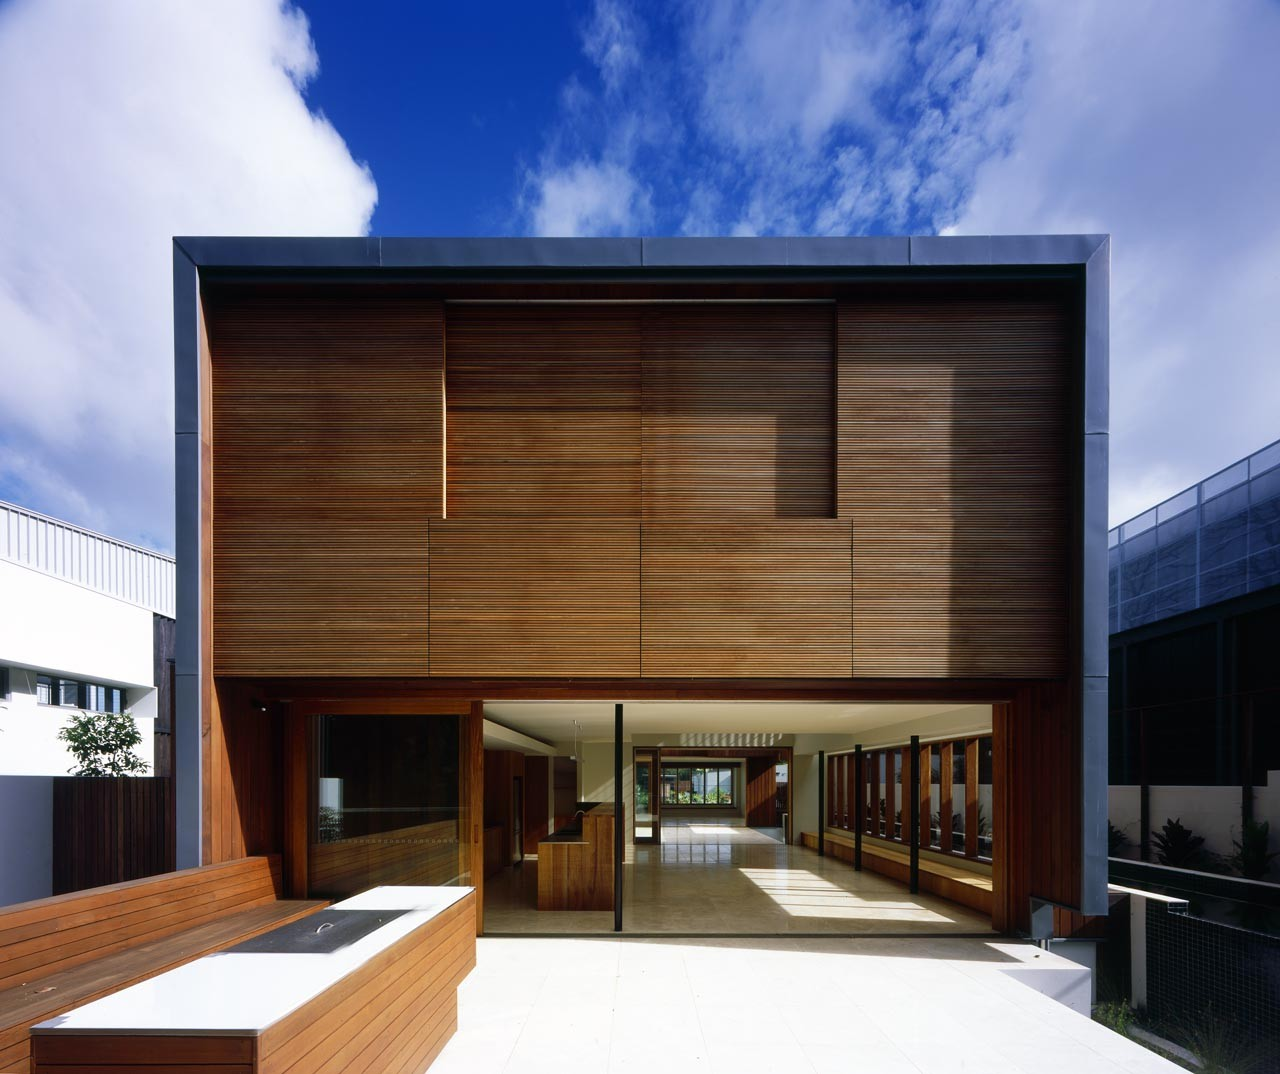 Home Design Ideas Architecture: Elysium / Richard Kirk Architect